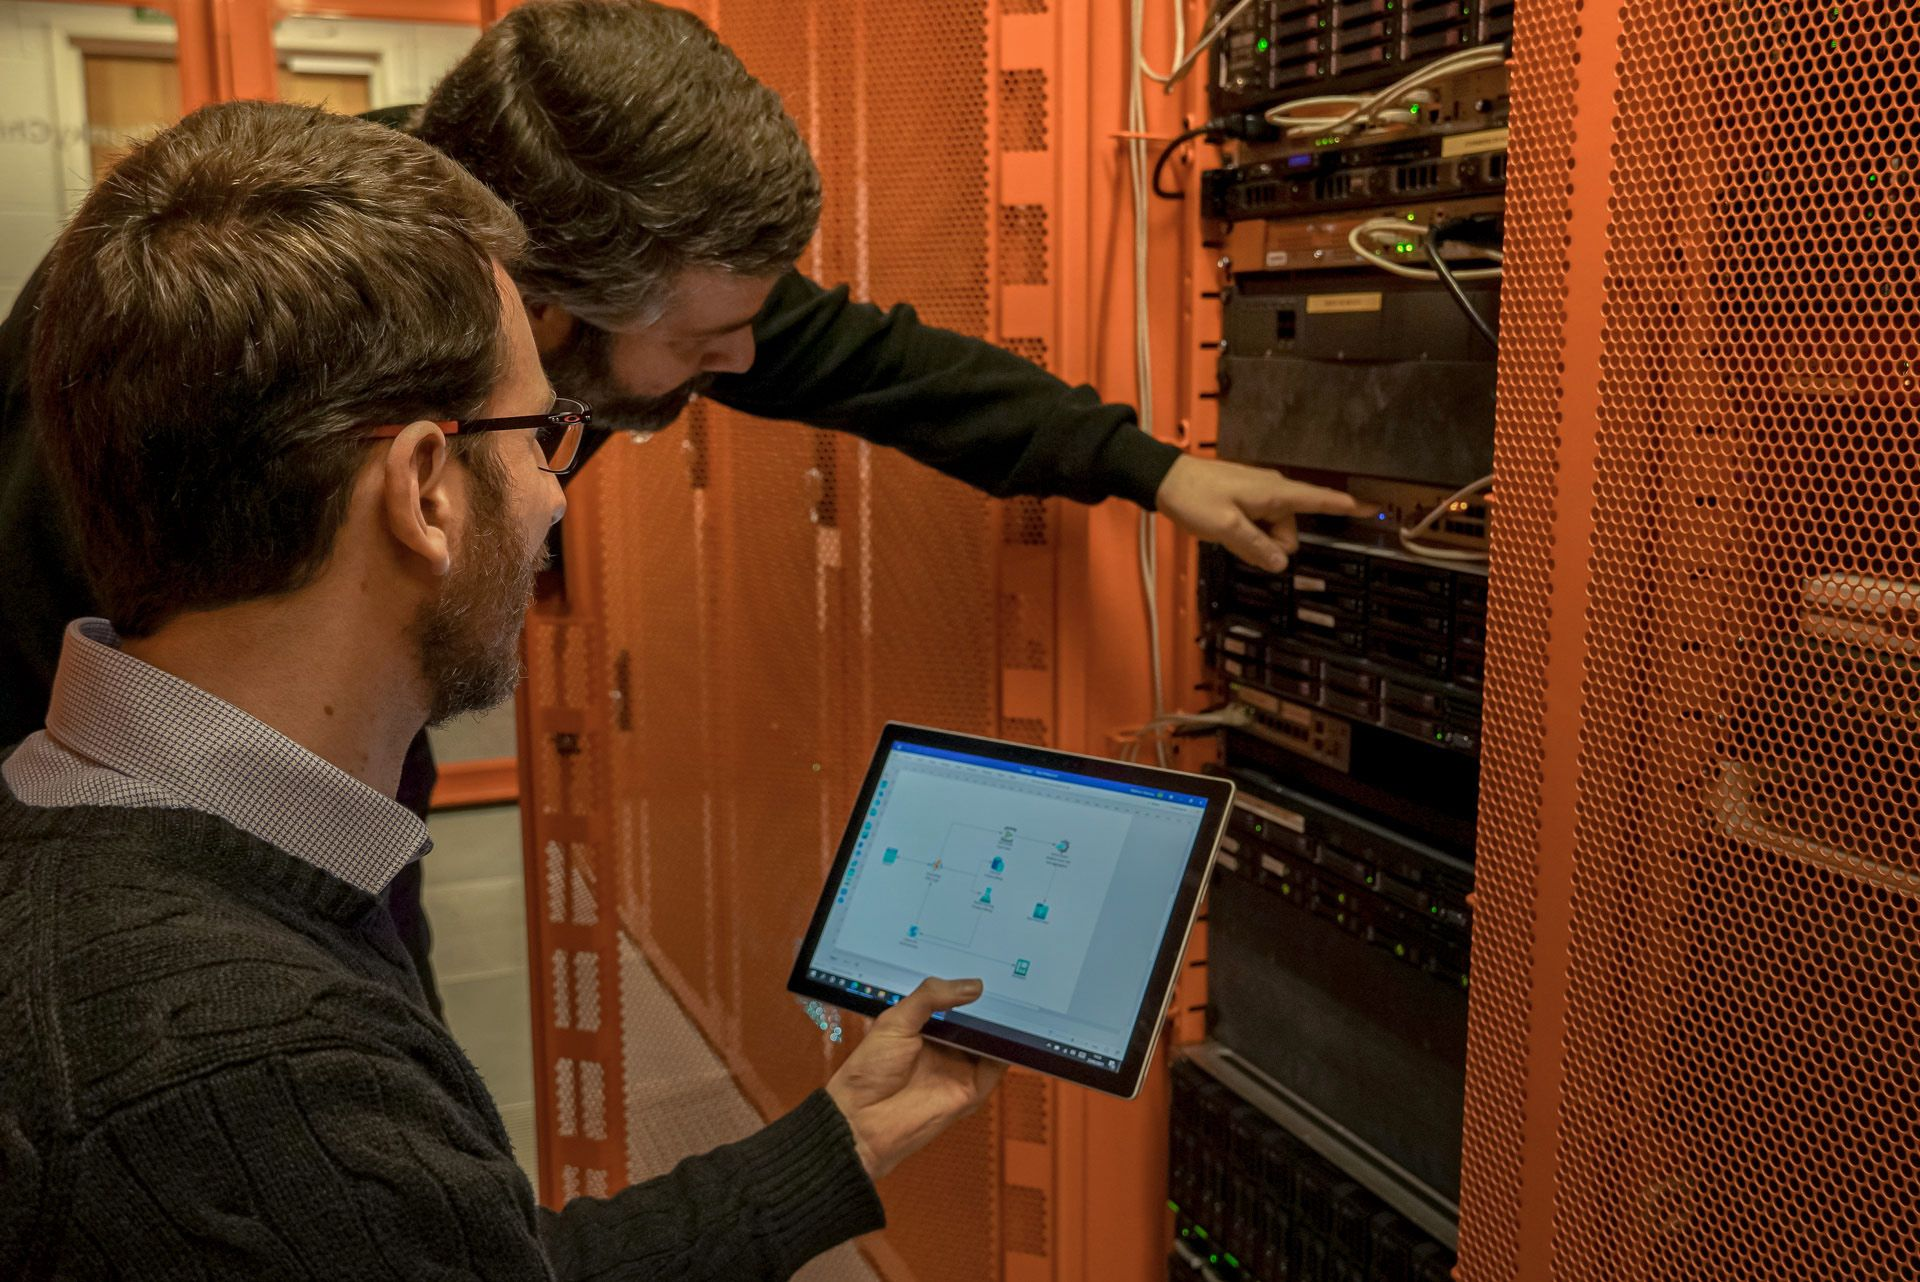 two colleagues working on servers - one holding tablet - one pressing button on server